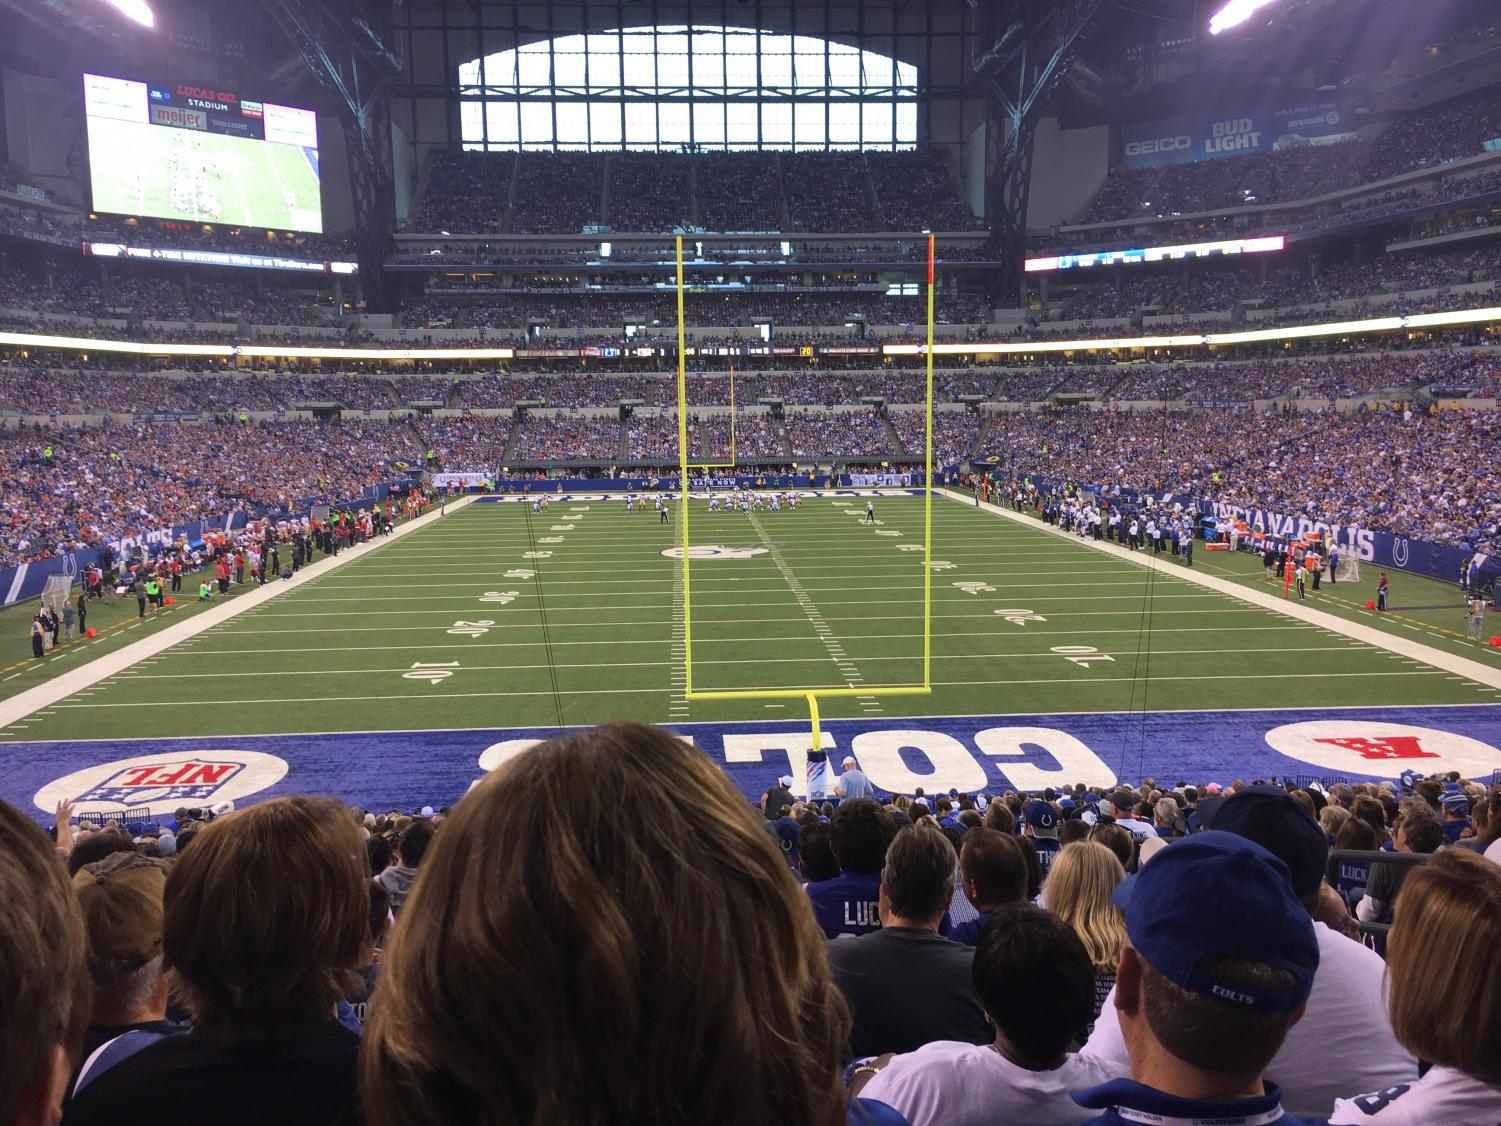 The Indianapolis Colts host the San Francisco 49ers at Lucas Oil Stadium on Oct. 8, 2017.